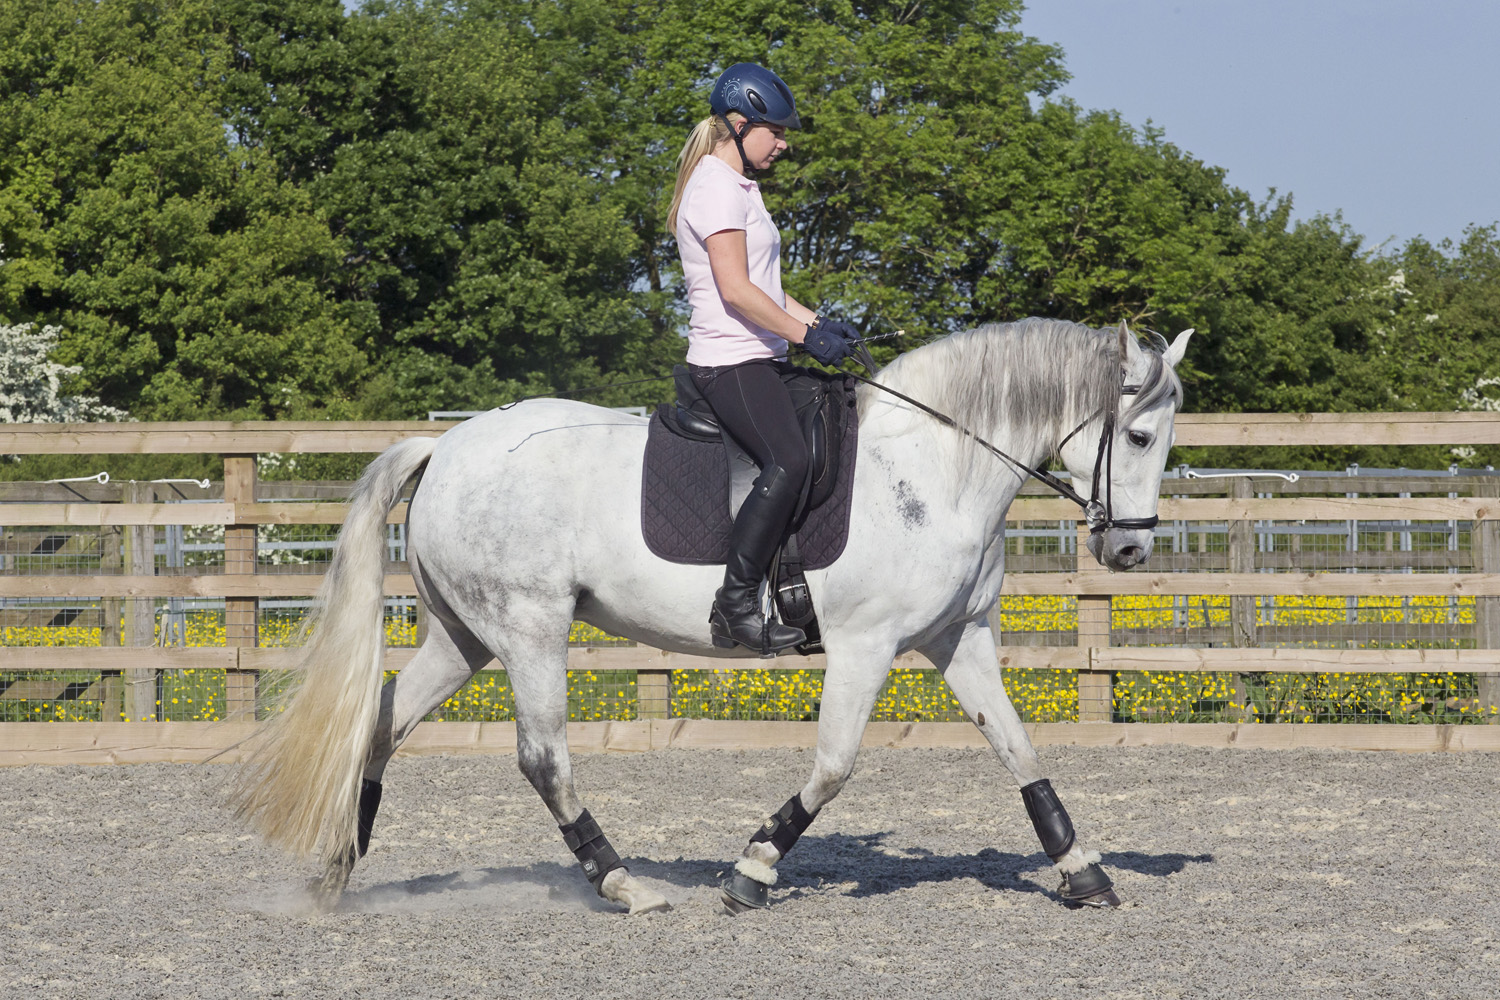 Lovely PRE all-rounder - Height: 15.1 hhBreed: PREColour: GreyDOB: 4/07/2008Gender: Mare (APTO)